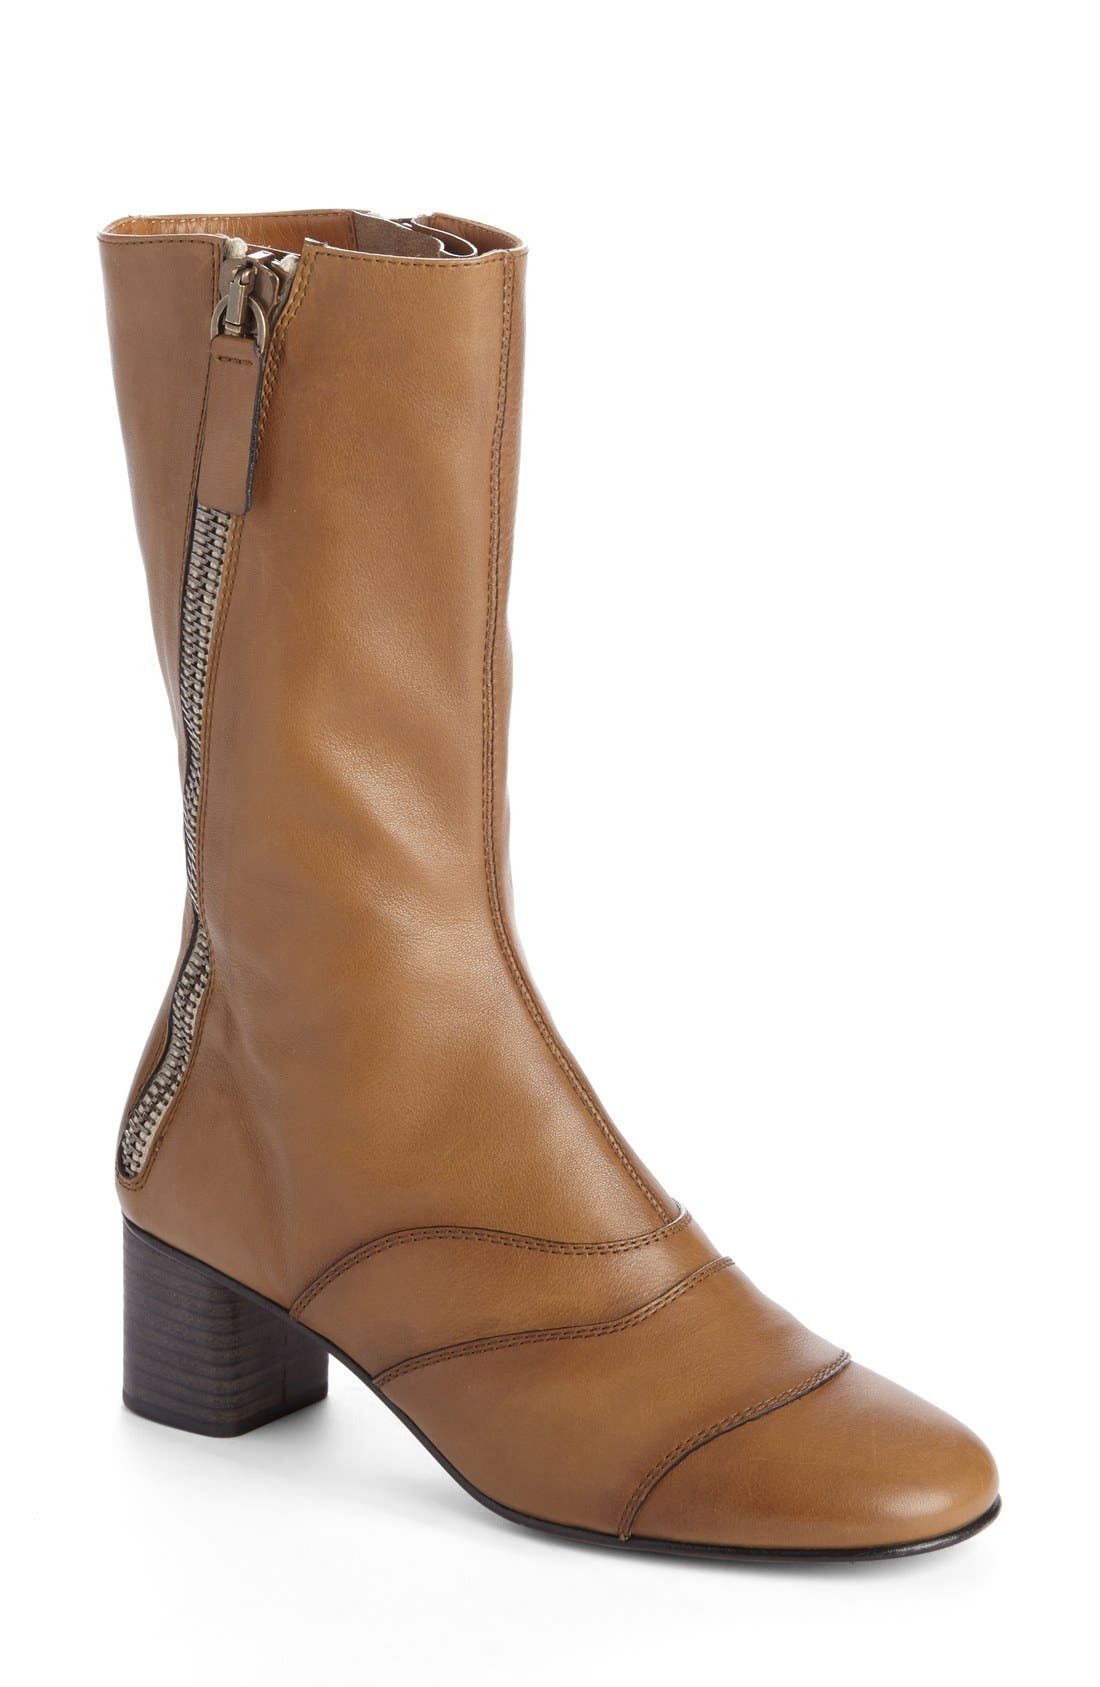 'Lexie' Block Heel Boot,                             Main thumbnail 1, color,